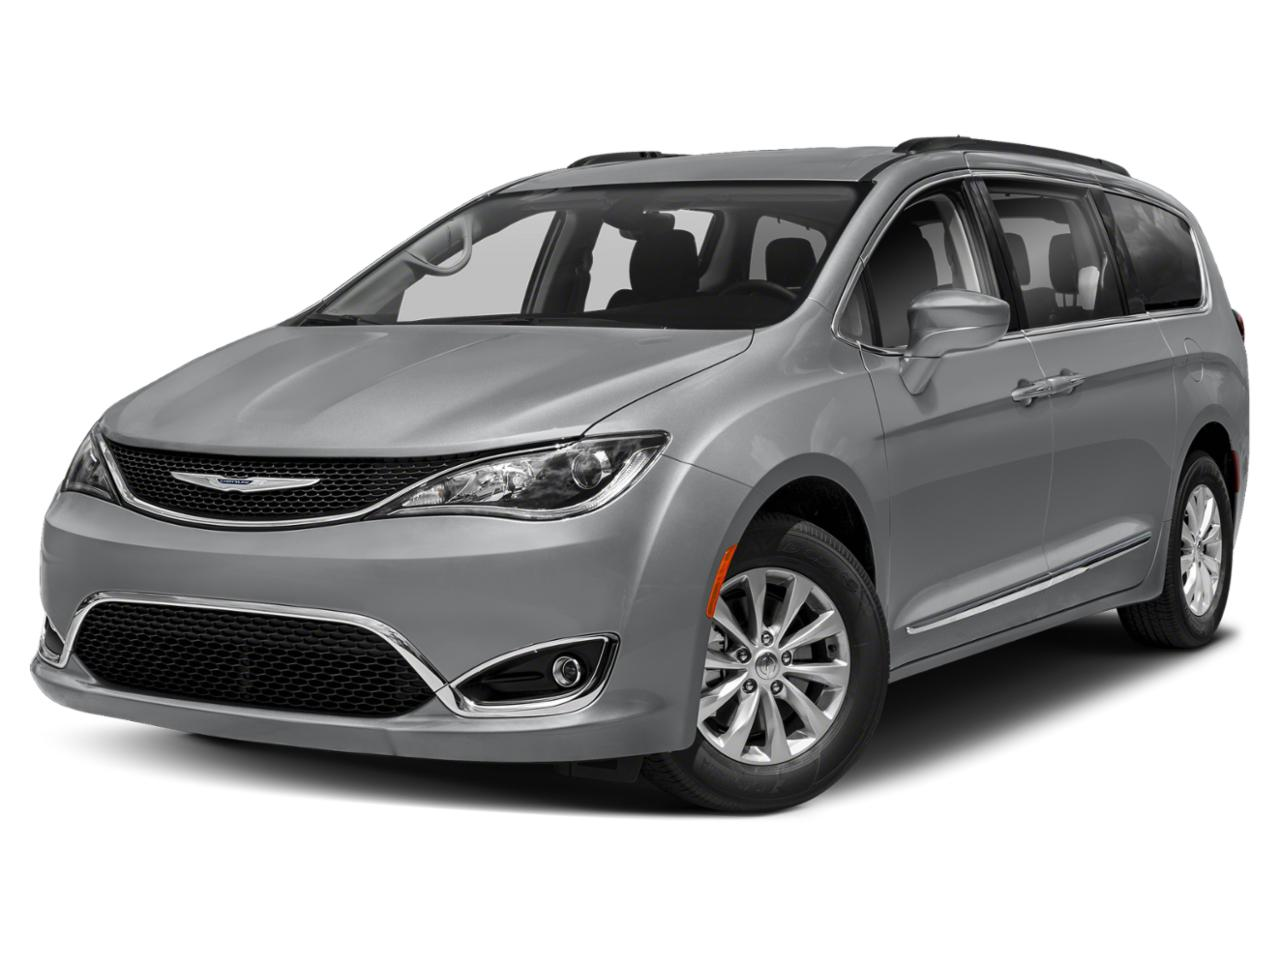 2020 Chrysler Pacifica Vehicle Photo in MEDINA, OH 44256-9631